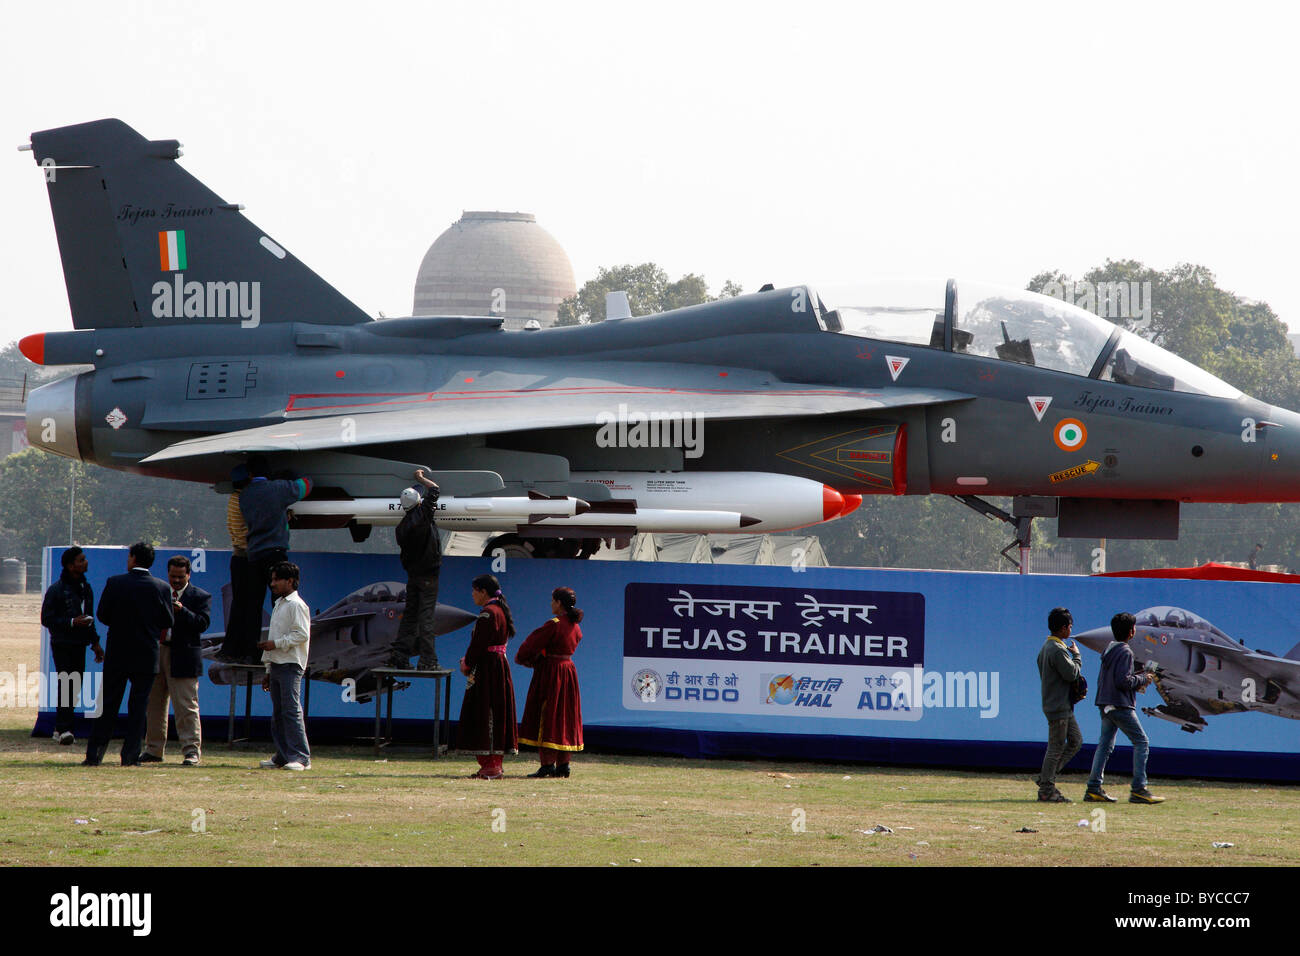 Tejas Trainer War Plane Armored Indian Air Force Display People Republic Day 26th January India Gate New Delhi Aeroplane